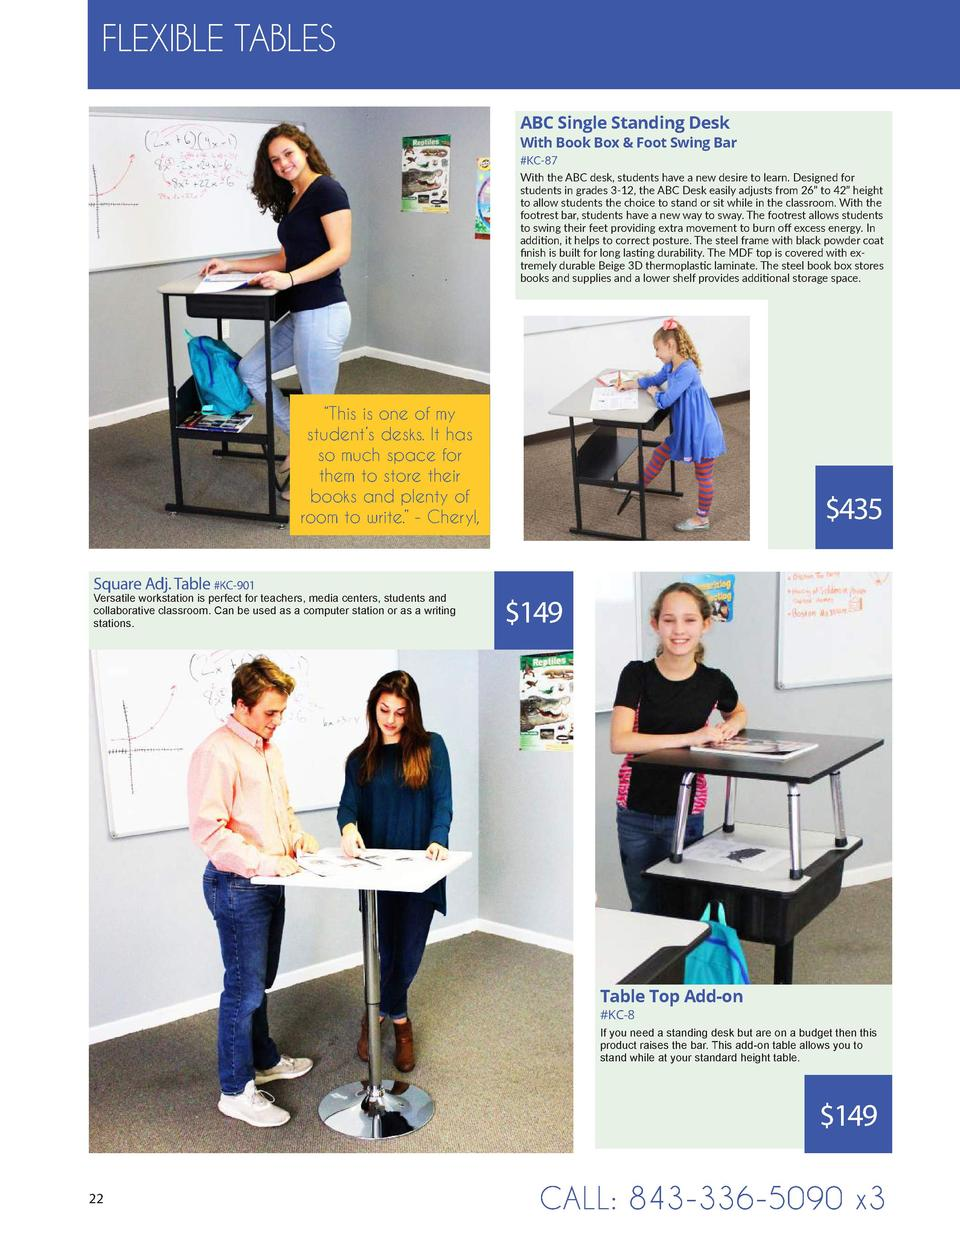 FLEXIBLE TABLES ABC Single Standing Desk  With Book Box   Foot Swing Bar  KC-87 With the ABC desk, students have a new des...